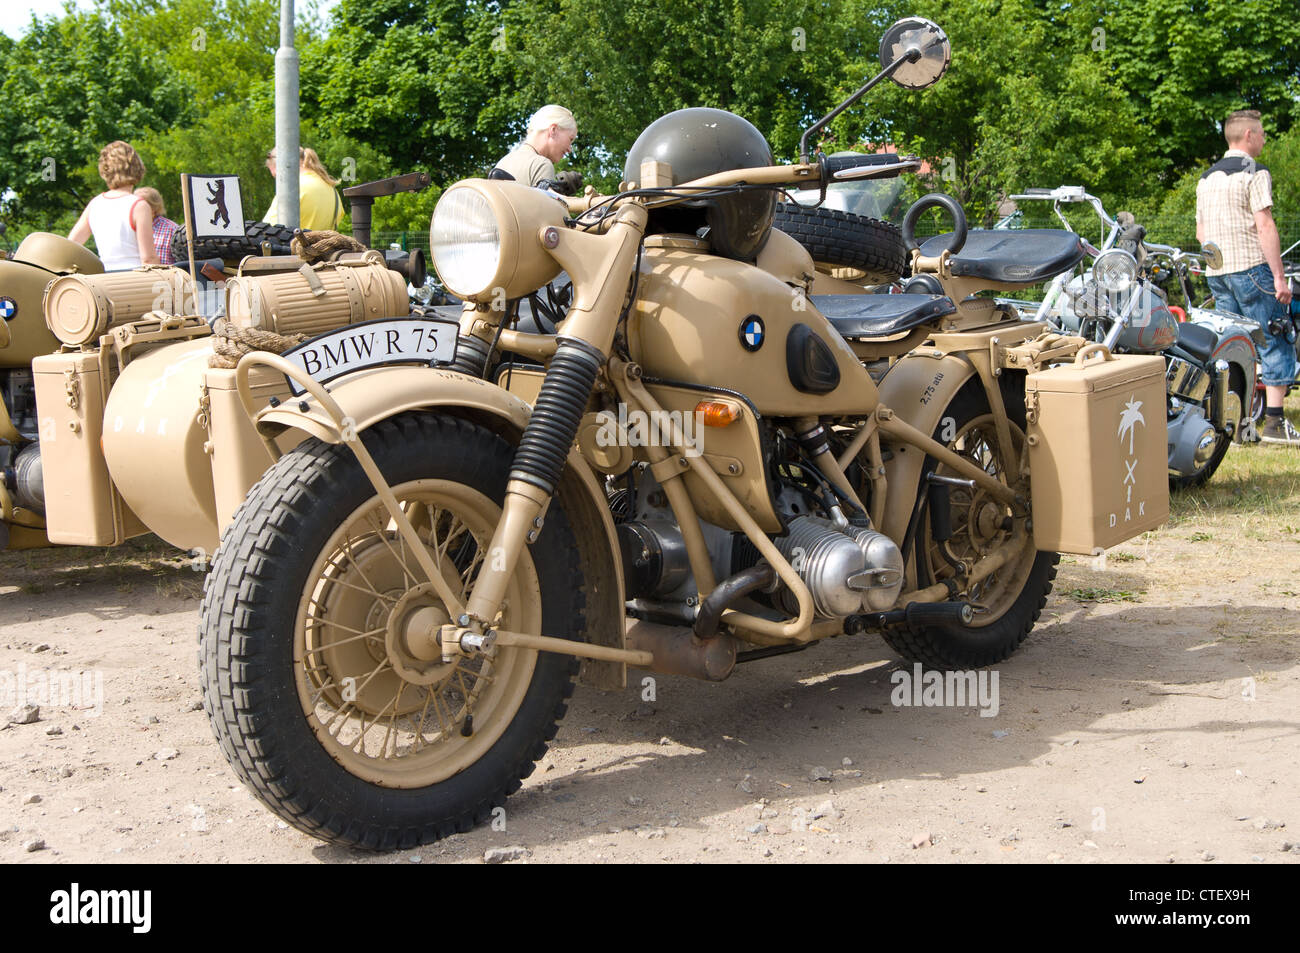 military motorcycles bmw r75 stock photo, royalty free image